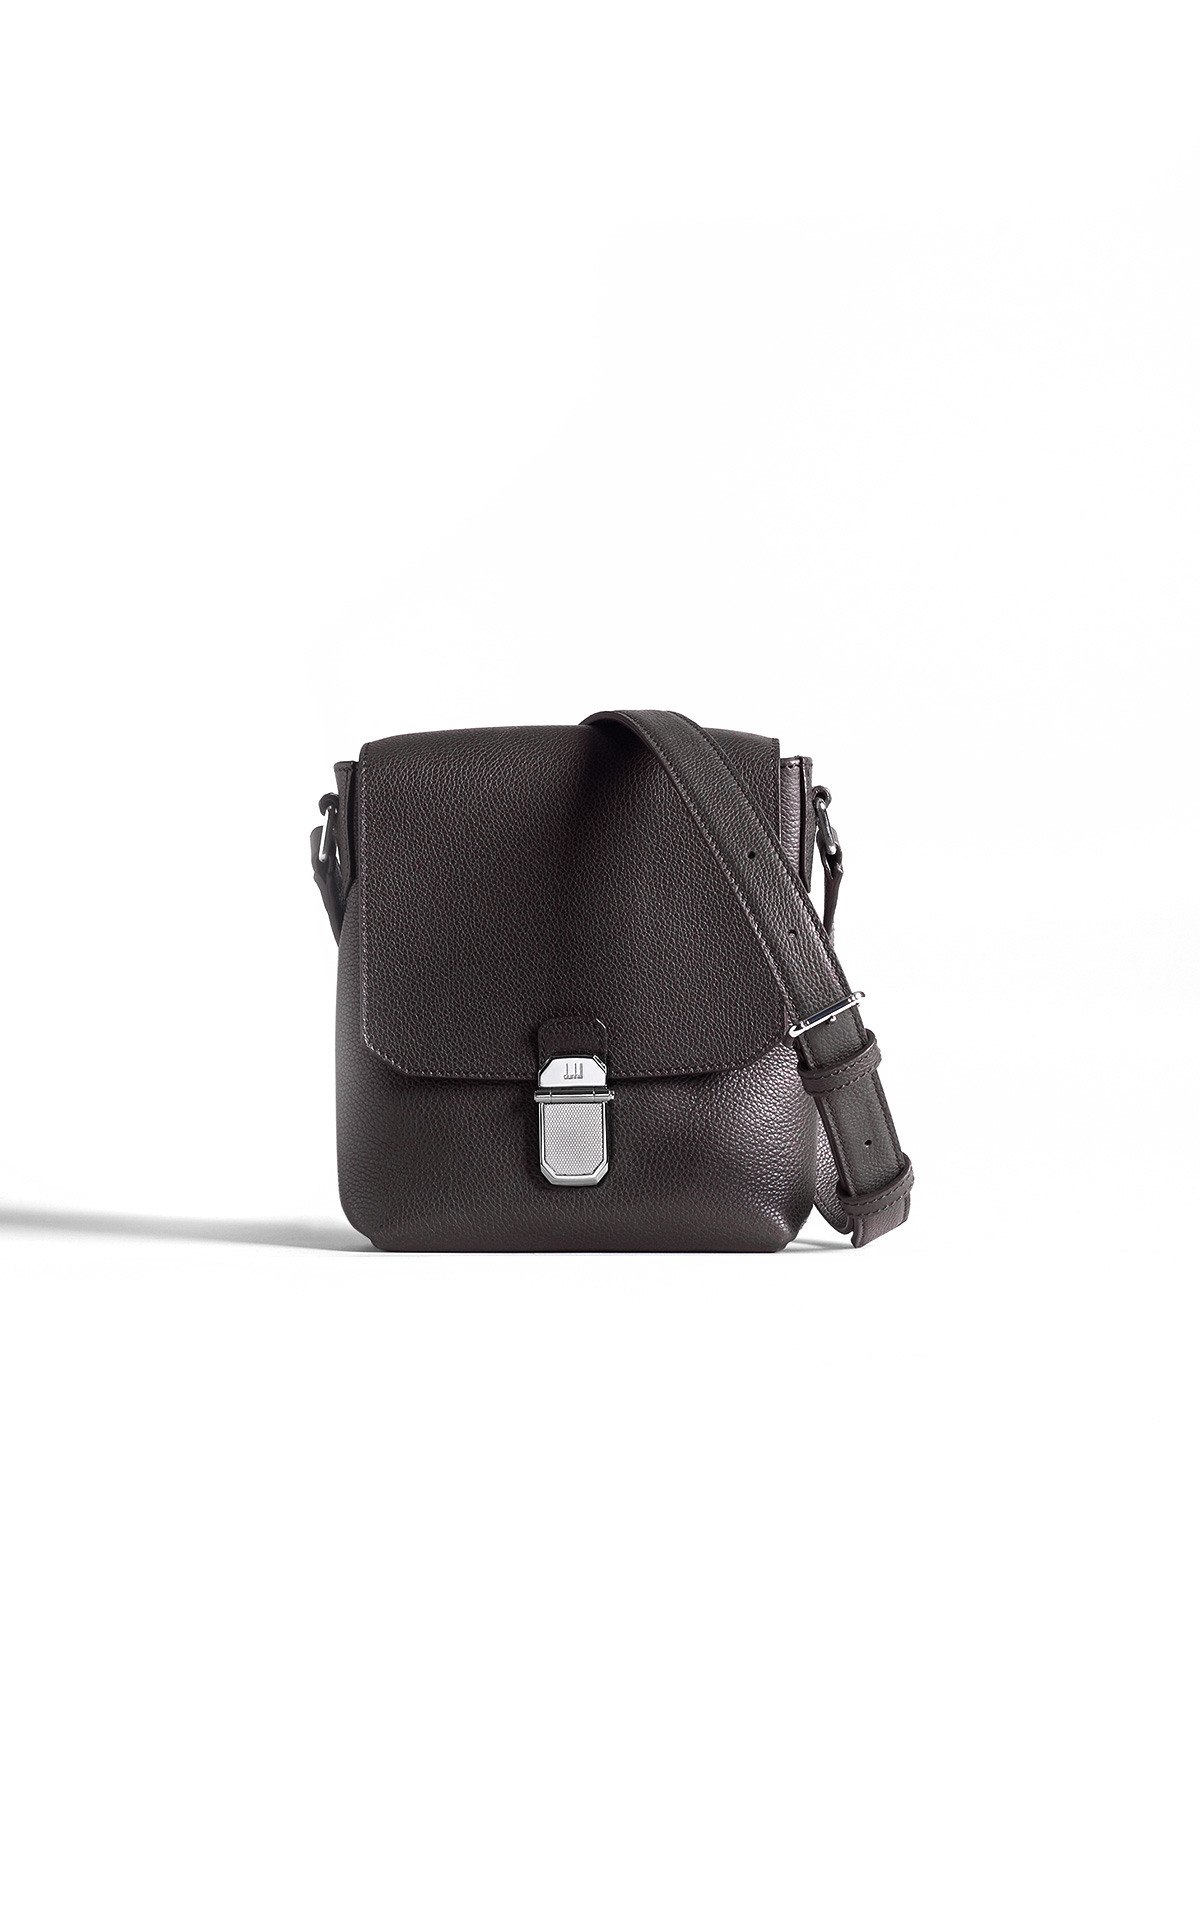 dunhill Brown saddle bag | La Vallée Village